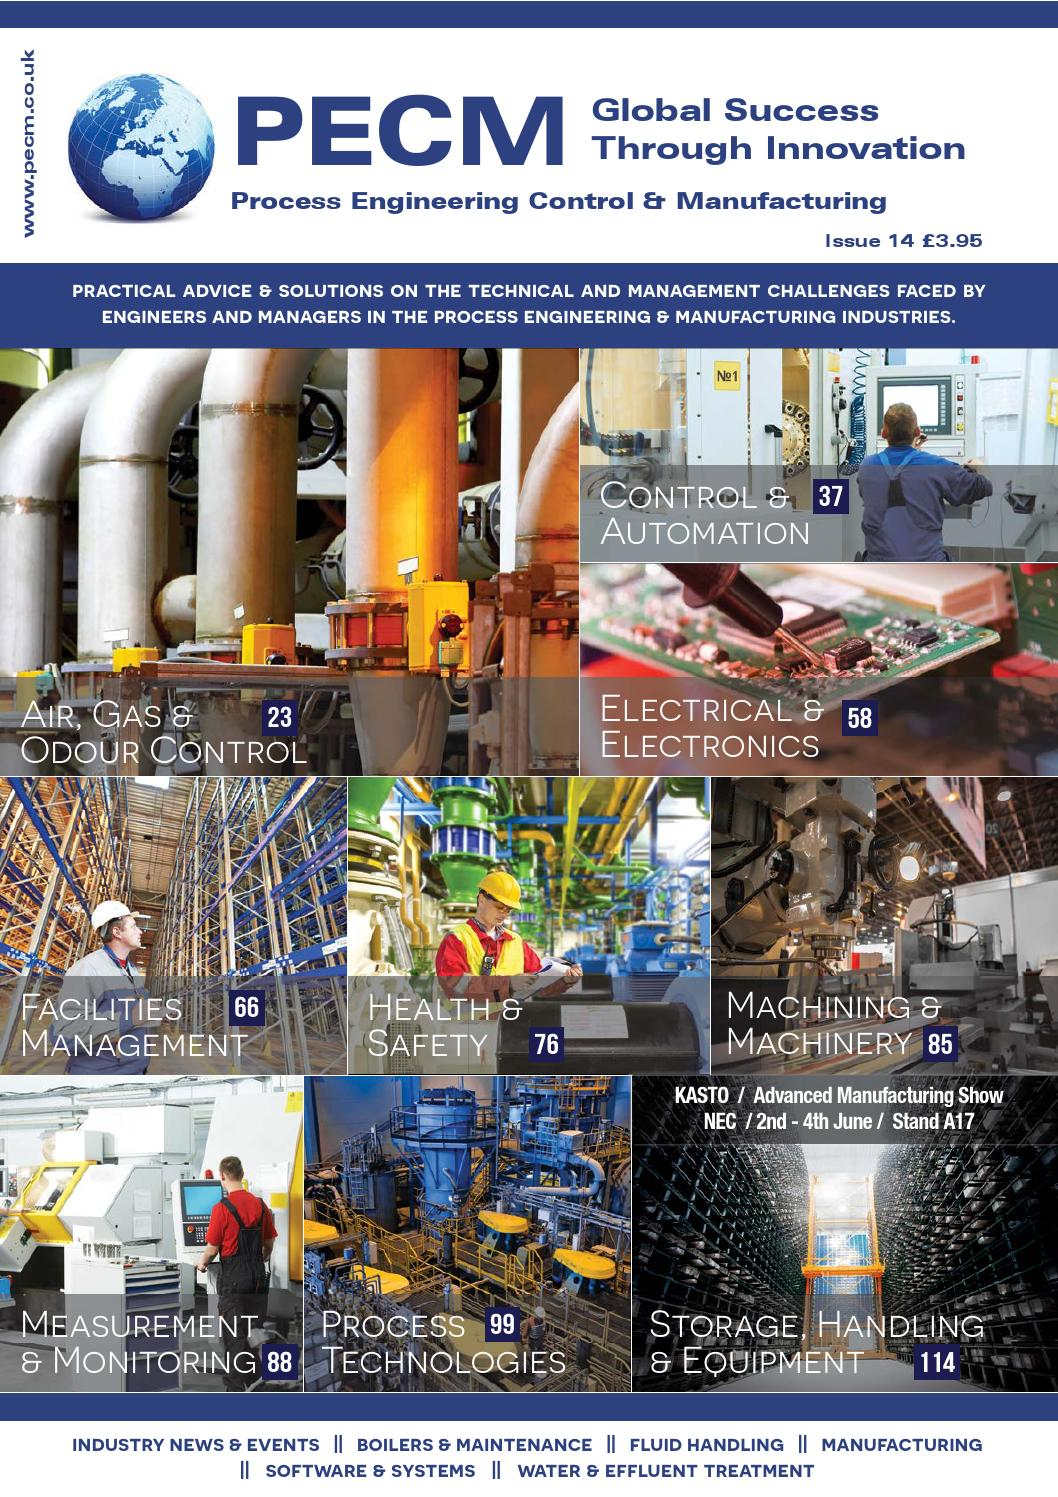 PECM - Issue 14 2015 by MH Media Global - issuu